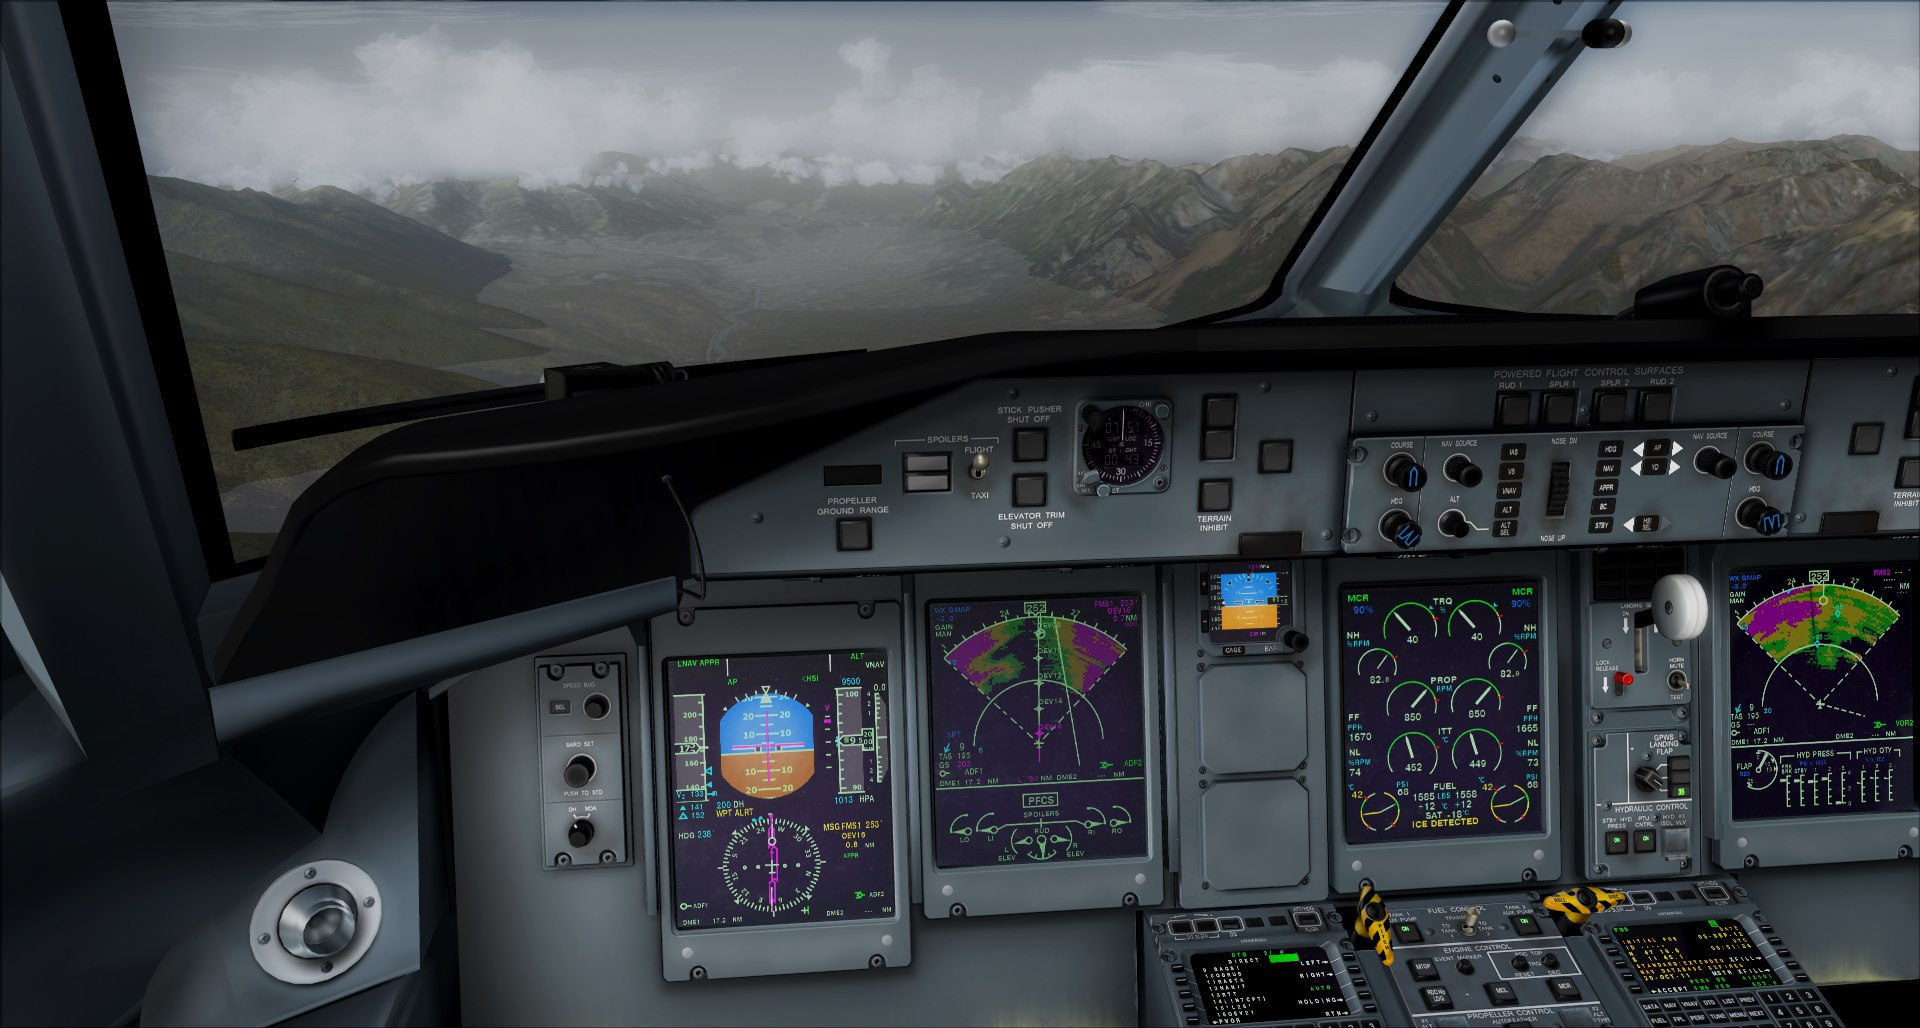 FS2Crew Majestic Dash 8 Q400 P3D 64bit Released! | PC Flight